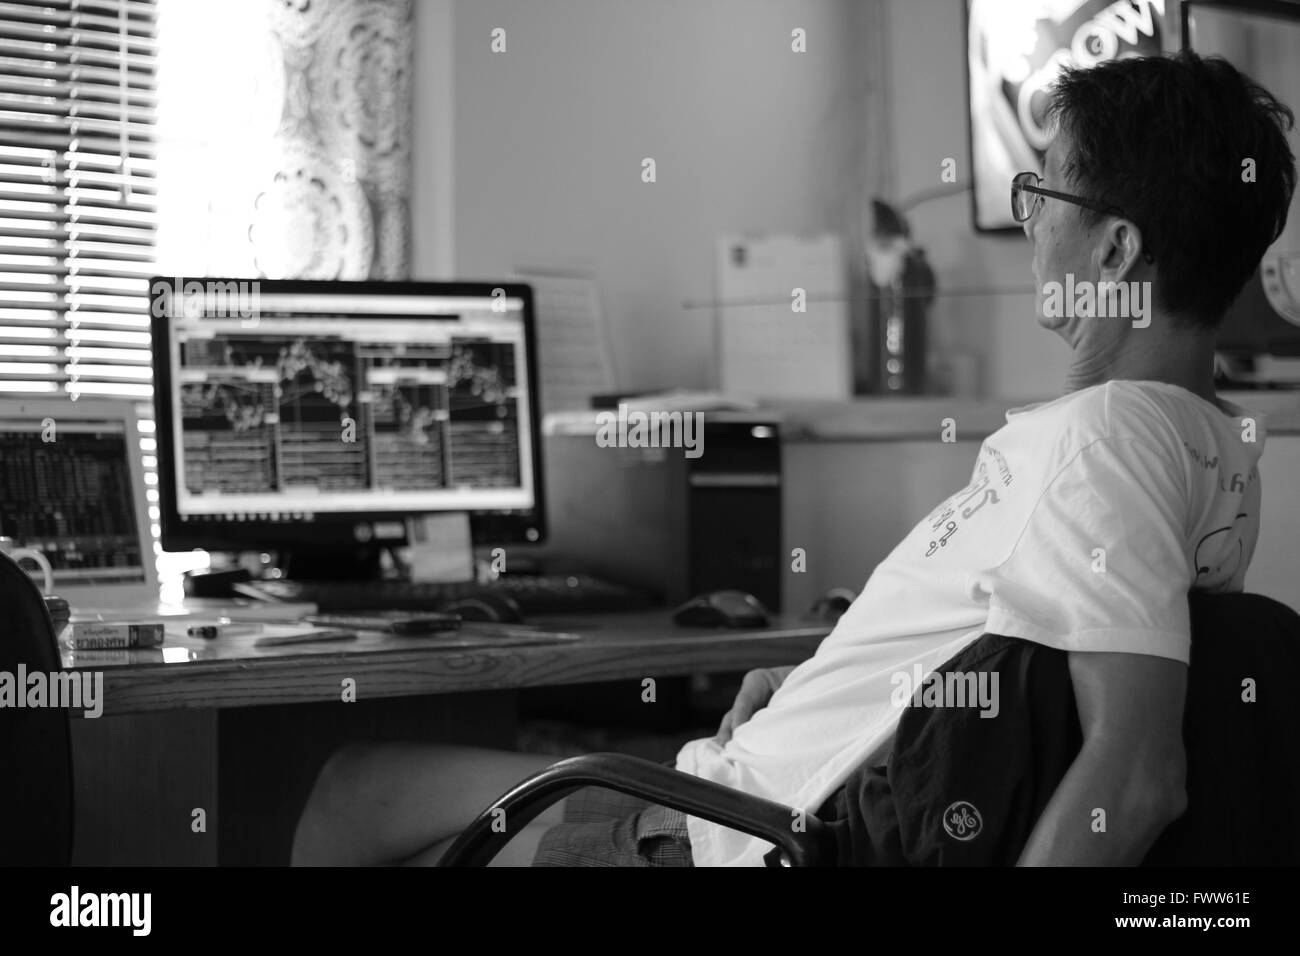 Asian man working at a computer - Stock Market day trading - Stock Image